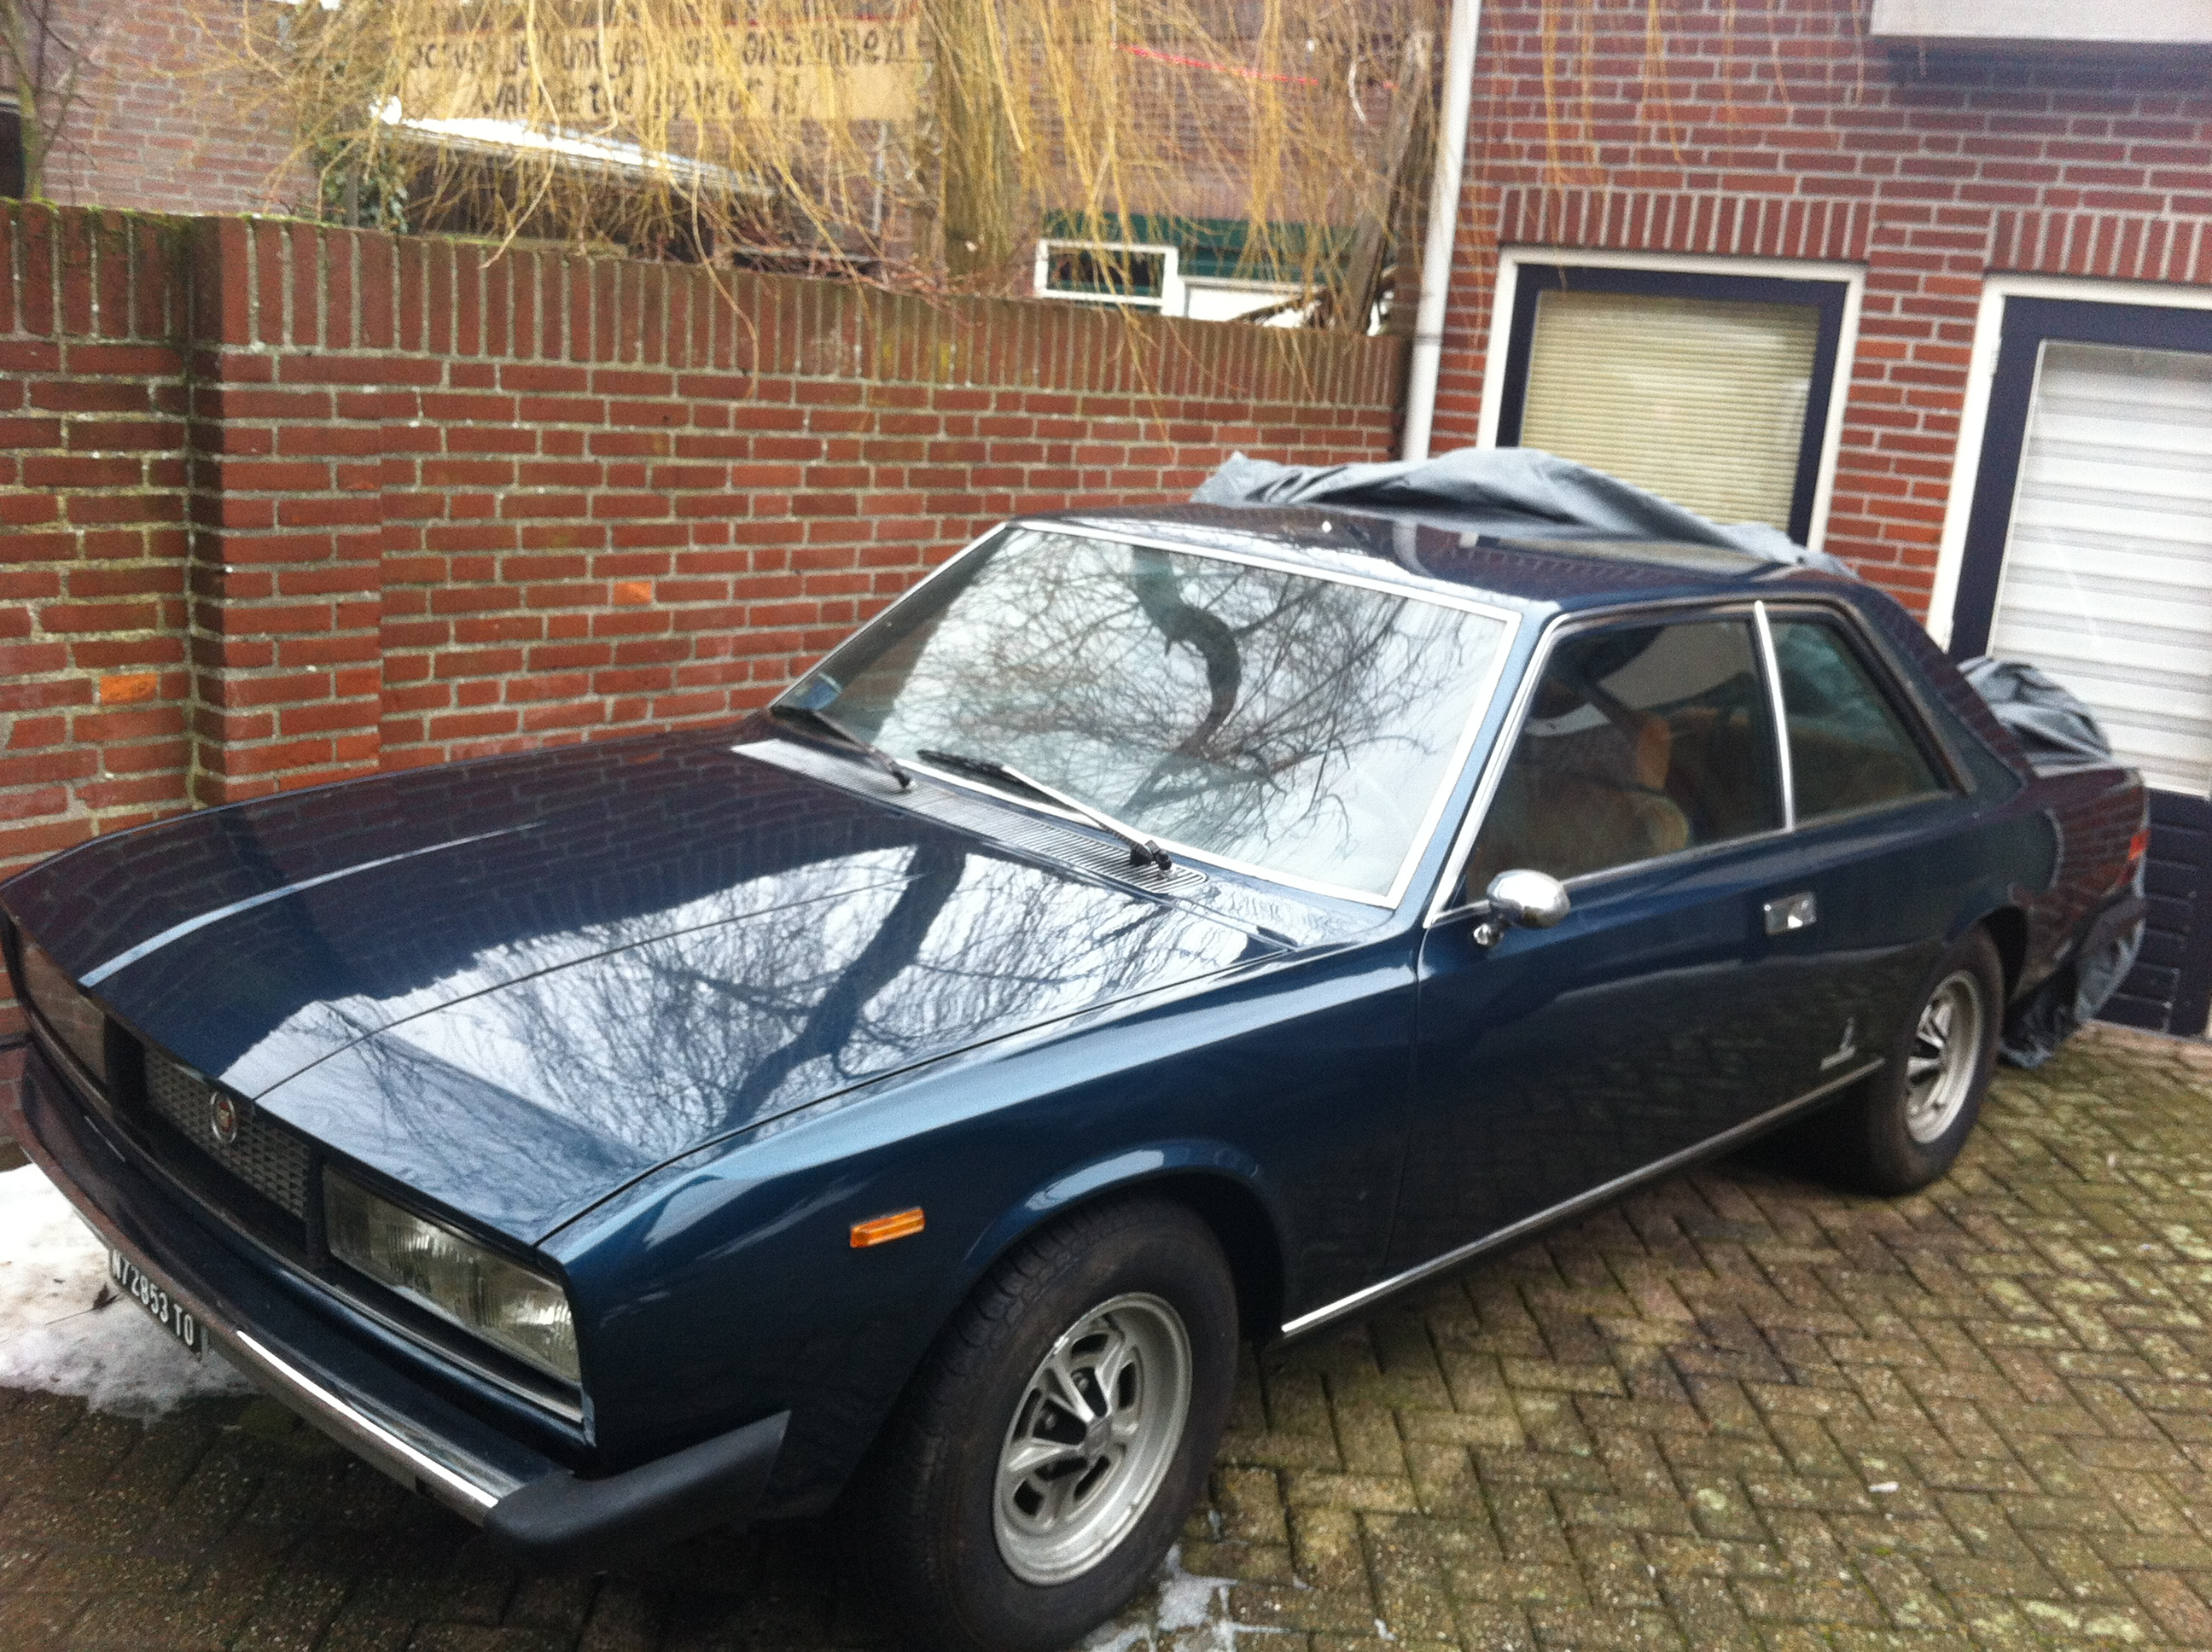 restoration of a 1976 fiat 130 coupe alex van der laan. Black Bedroom Furniture Sets. Home Design Ideas